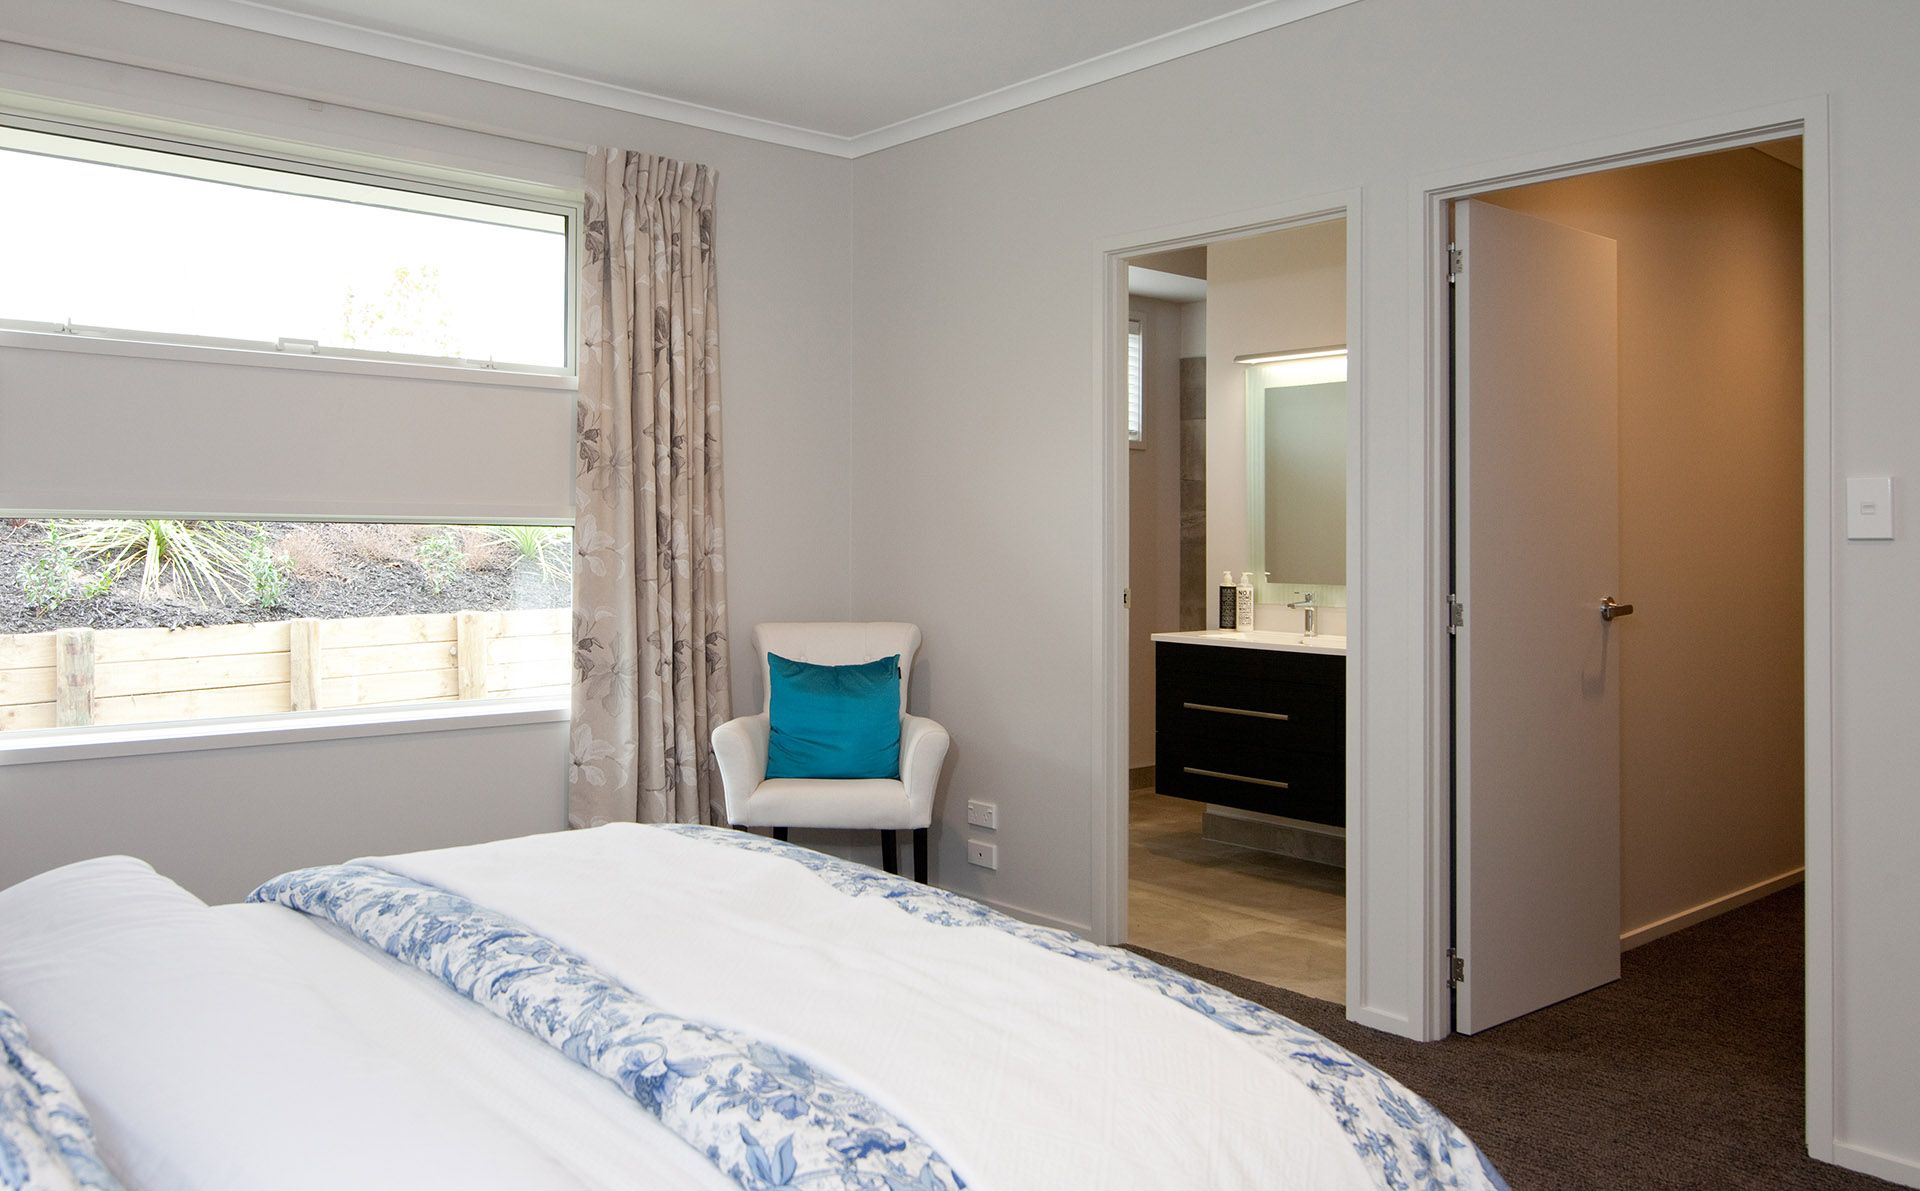 Master Bedroom And Bathroom Your Walk In Wardrobe And Ensuite Bathroom Master Bedroom Gj